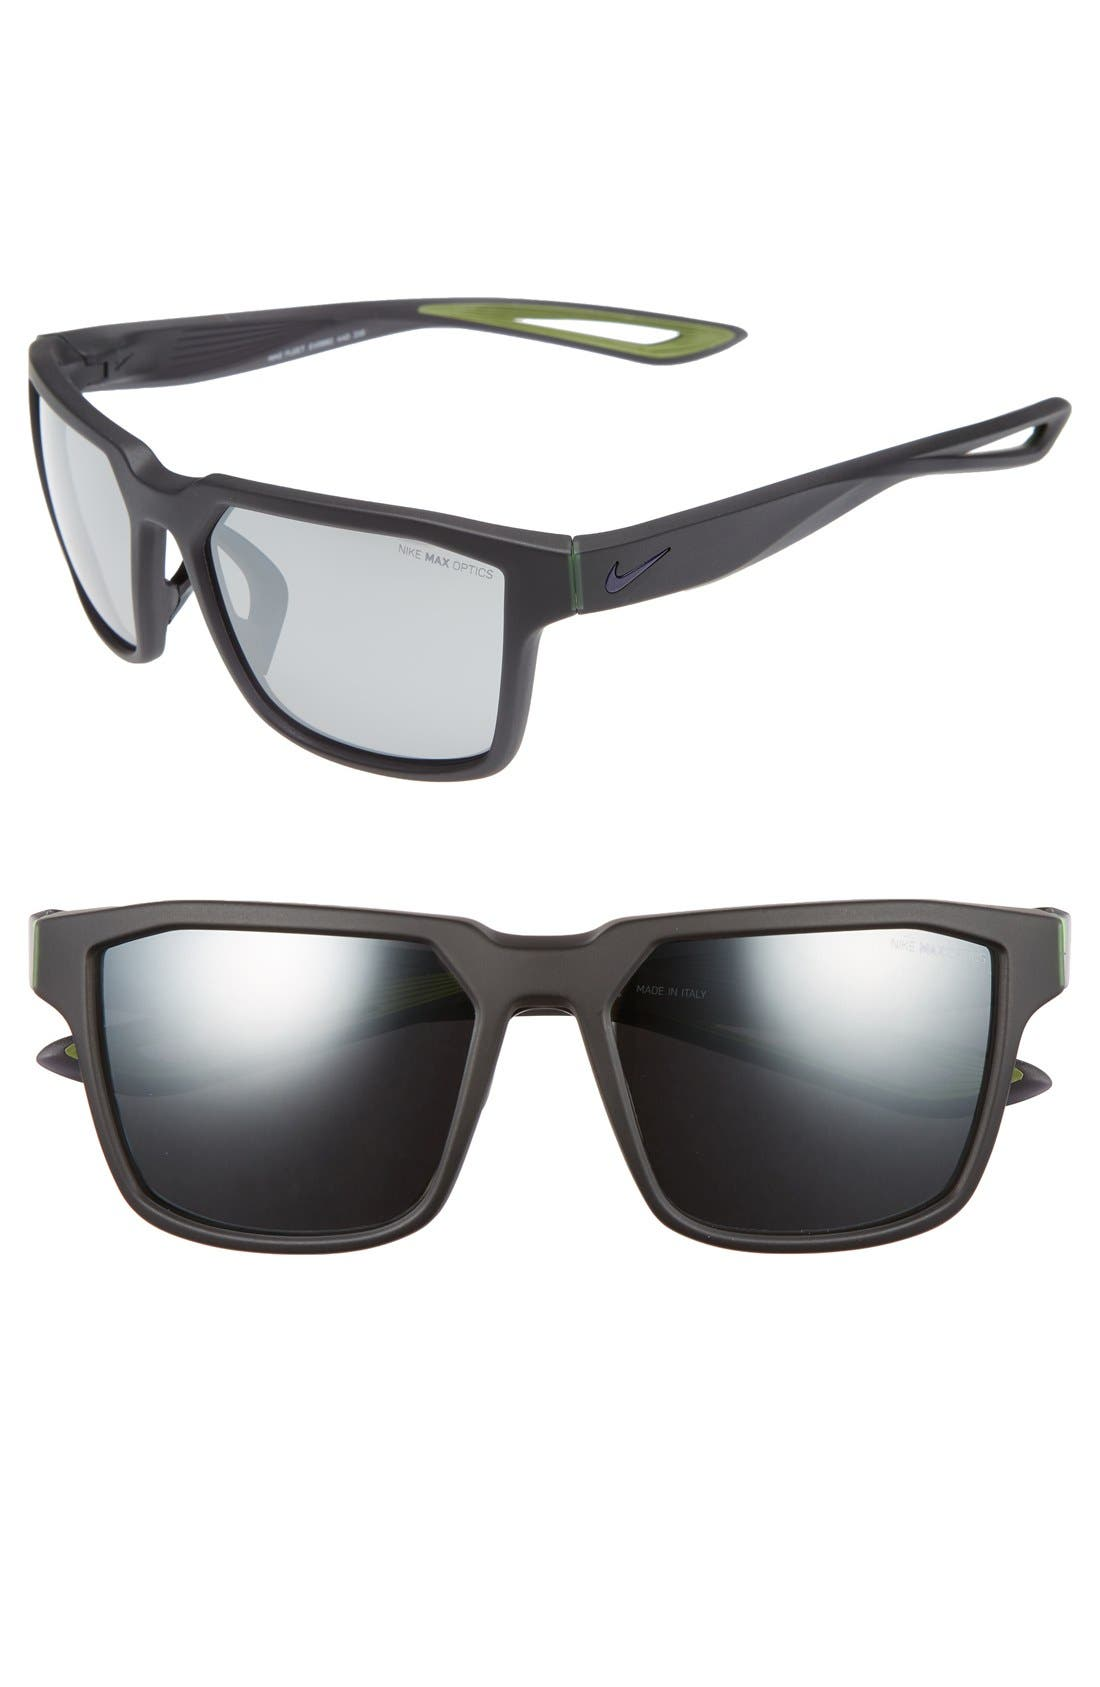 FLEET 55MM SPORT SUNGLASSES - MATTE OBSIDIAN